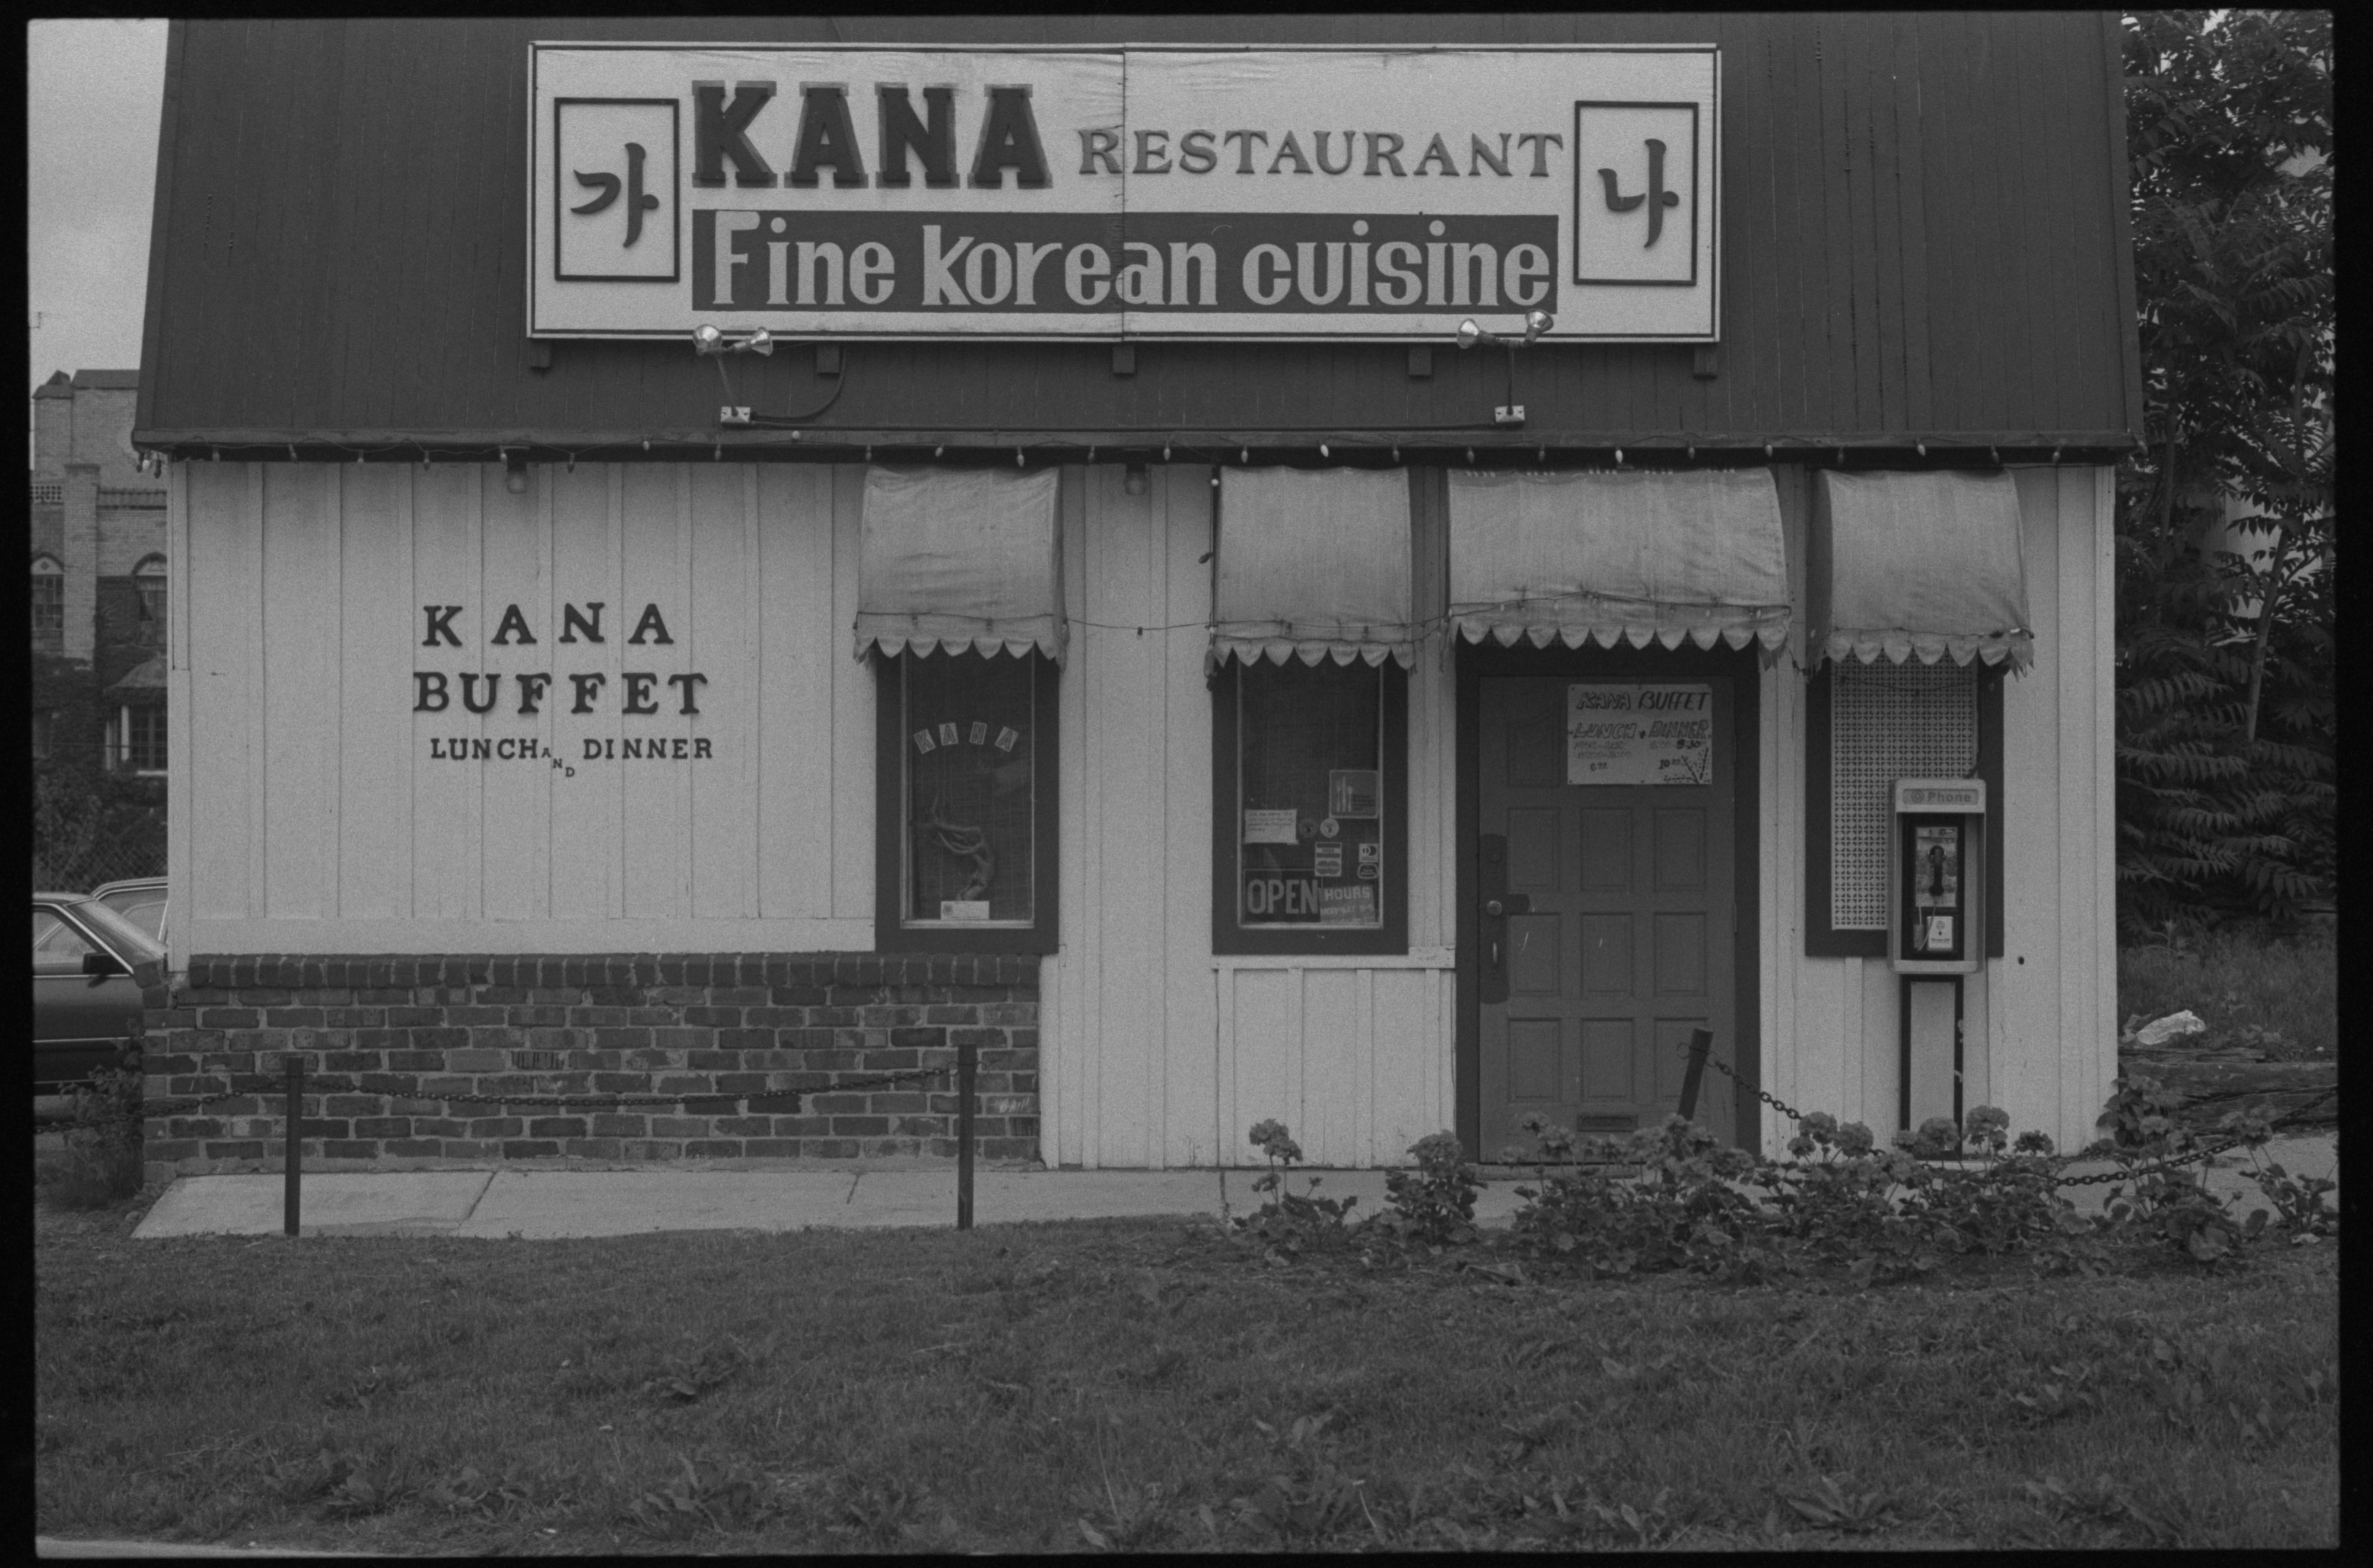 Kana Korean Restaurant, June 1989 image